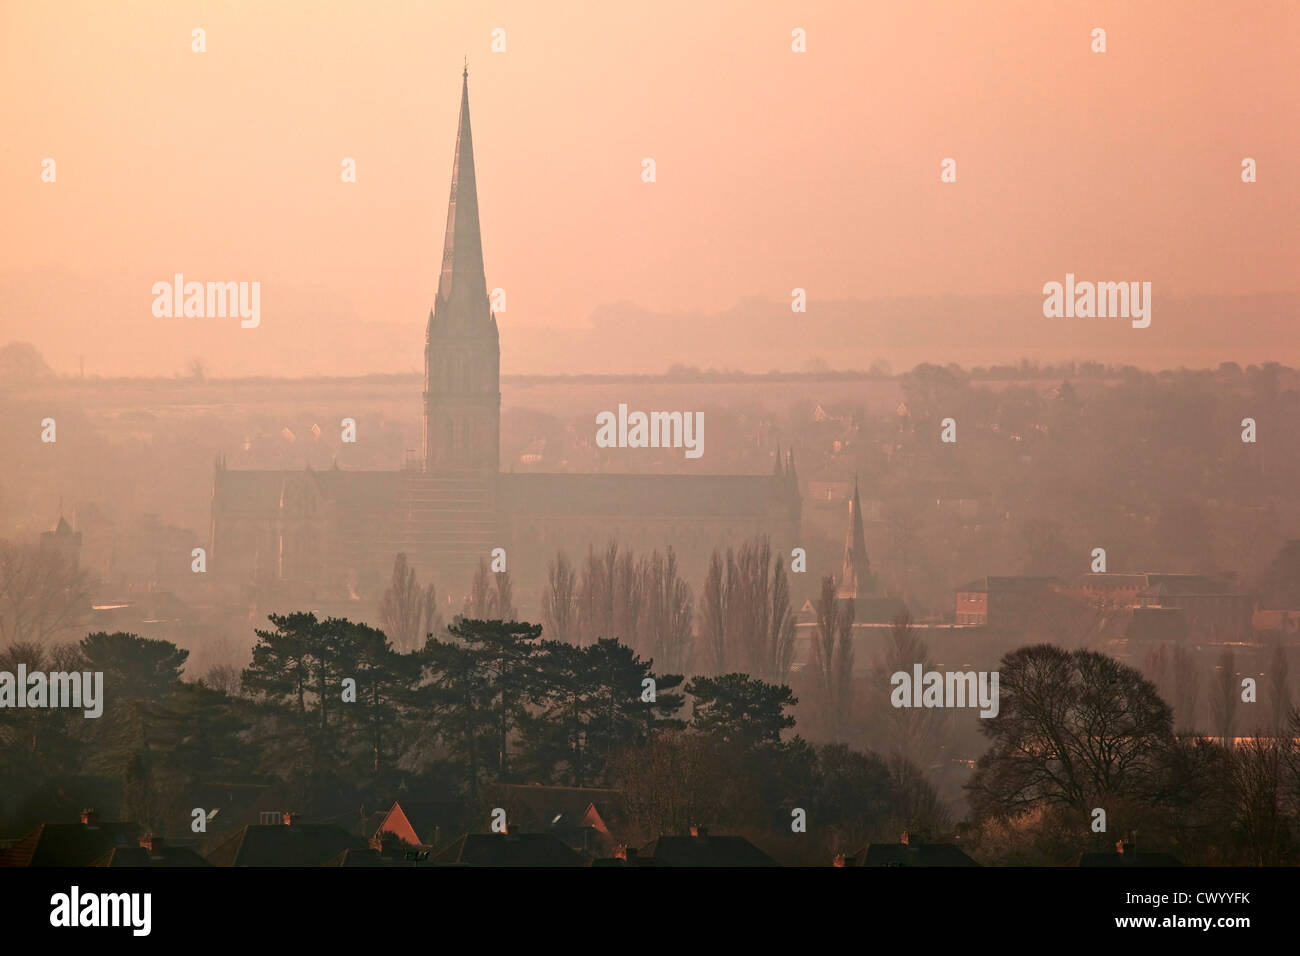 A view of Salisbury Cathedral early in the morning on a misty day, taken from Old Sarum Stock Photo